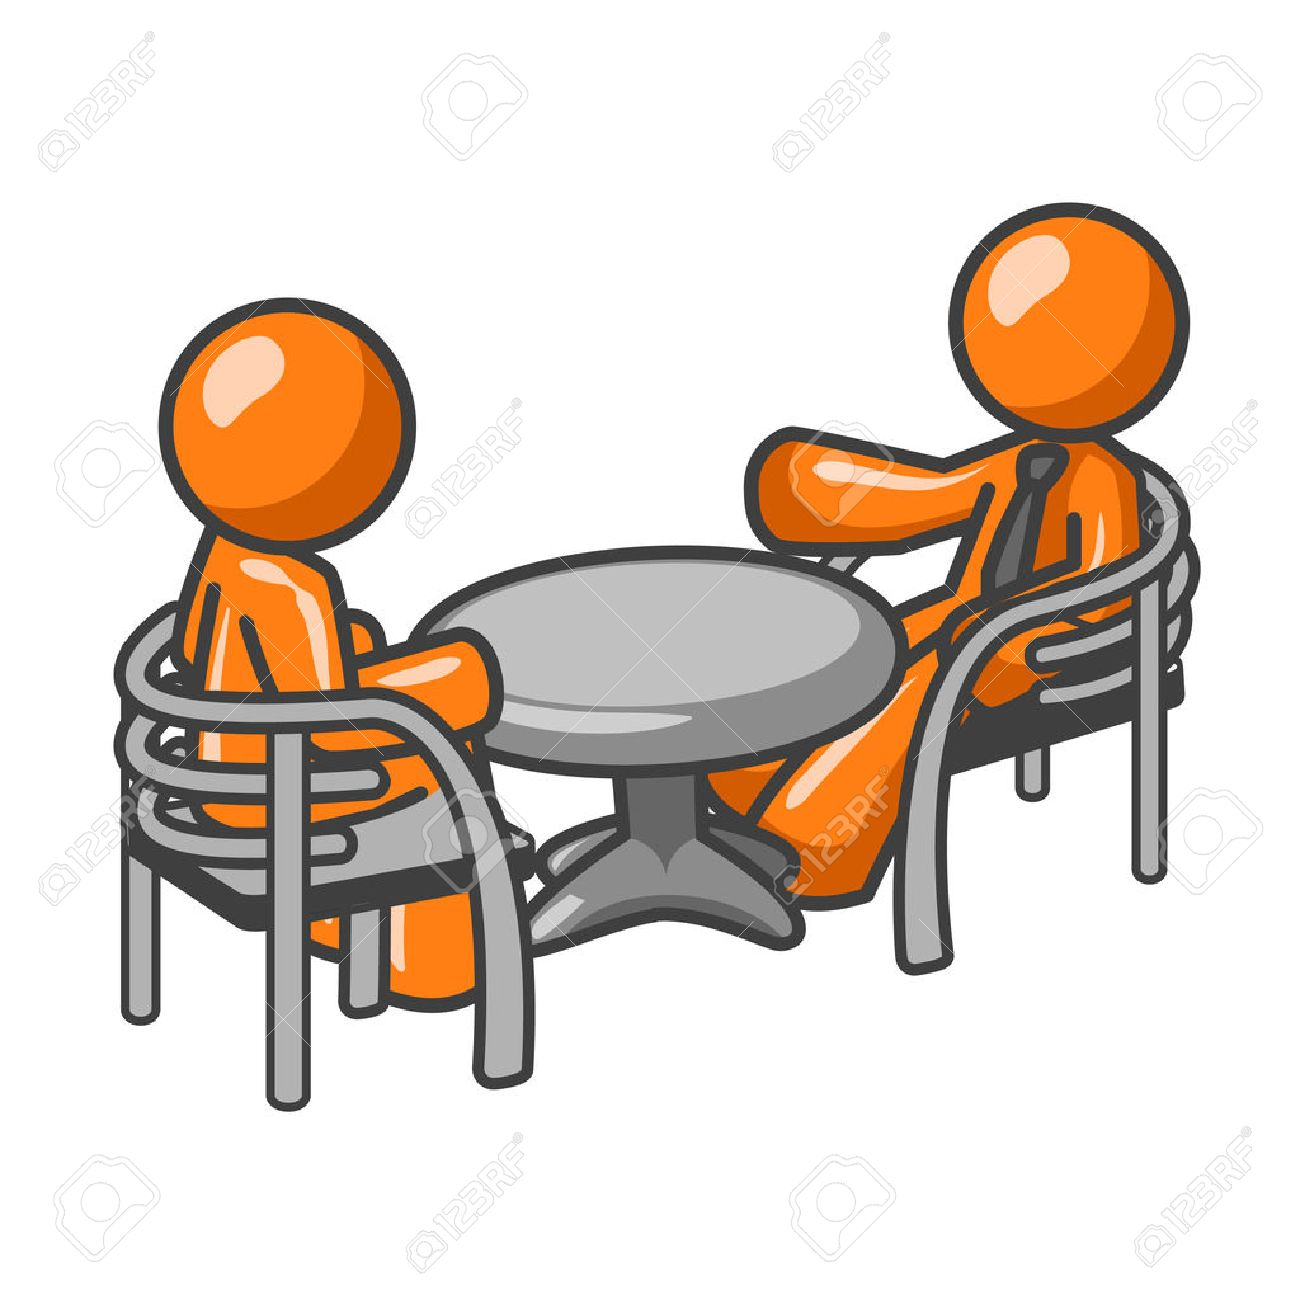 Two orange business men sitting at a table, having a business conference. Or maybe its just two friends talking about old times! Stock Vector - 1905758